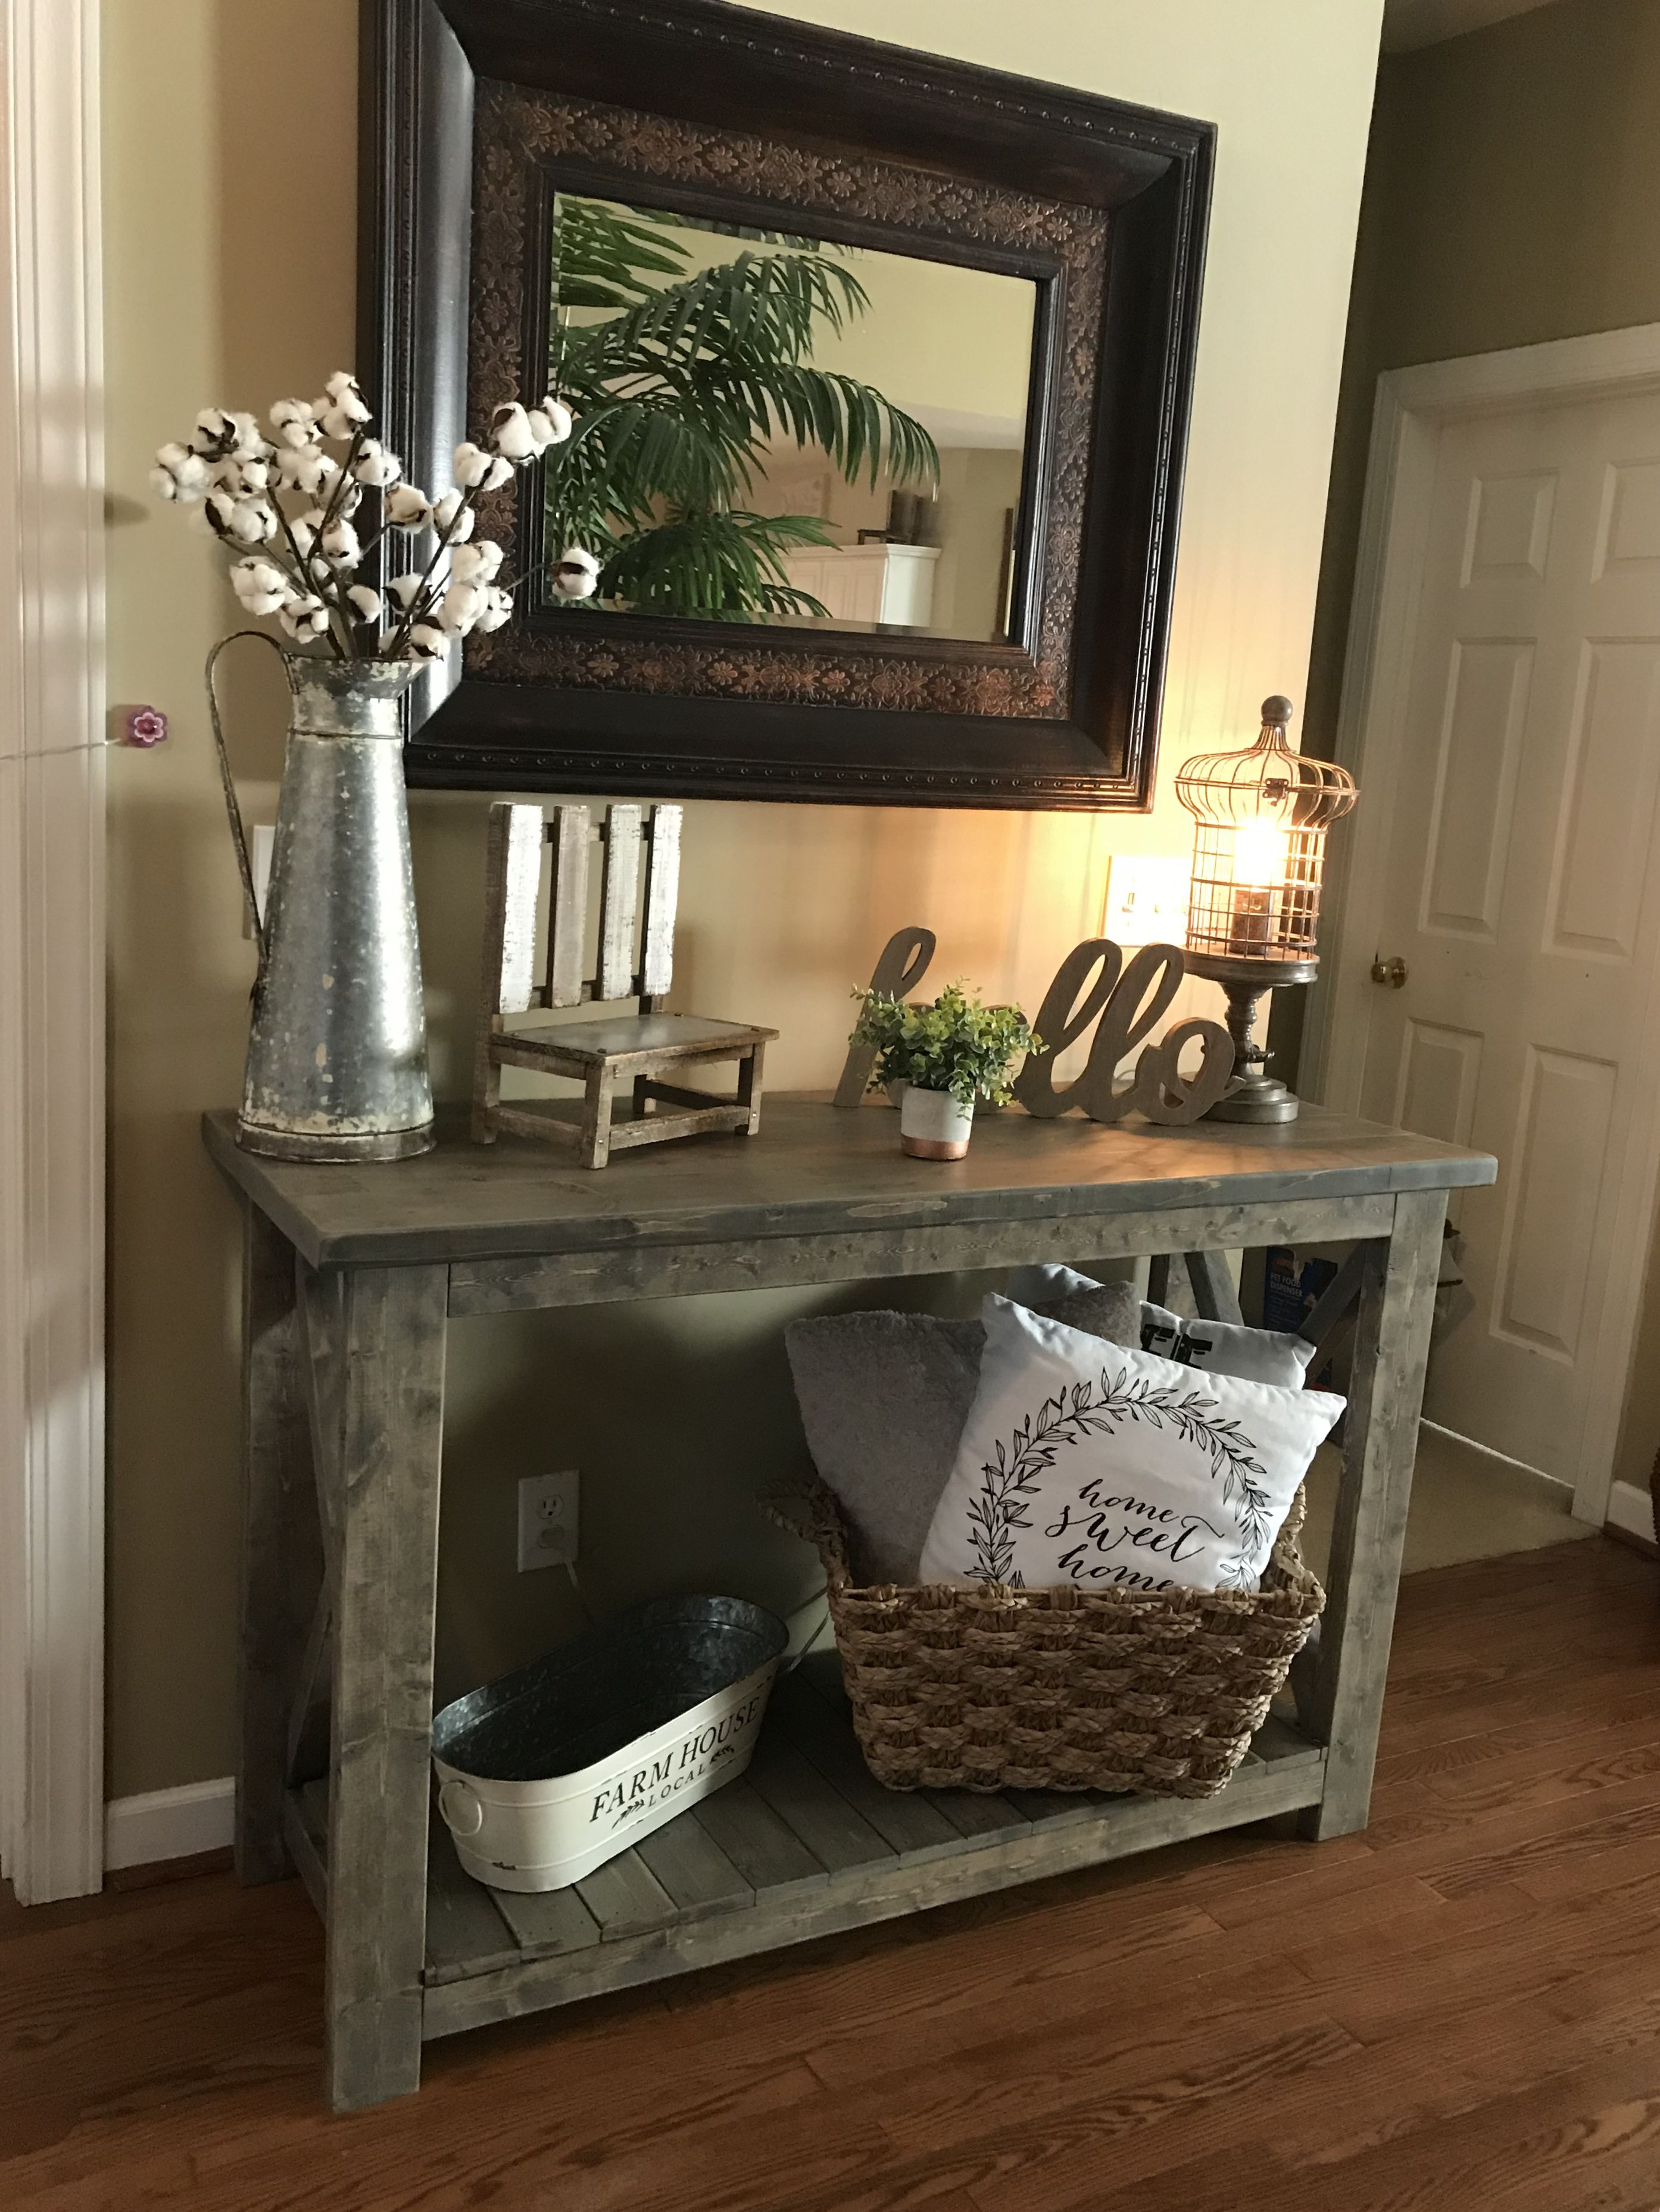 Sofa table silver pitcher with stems on bottom left shelf sofa